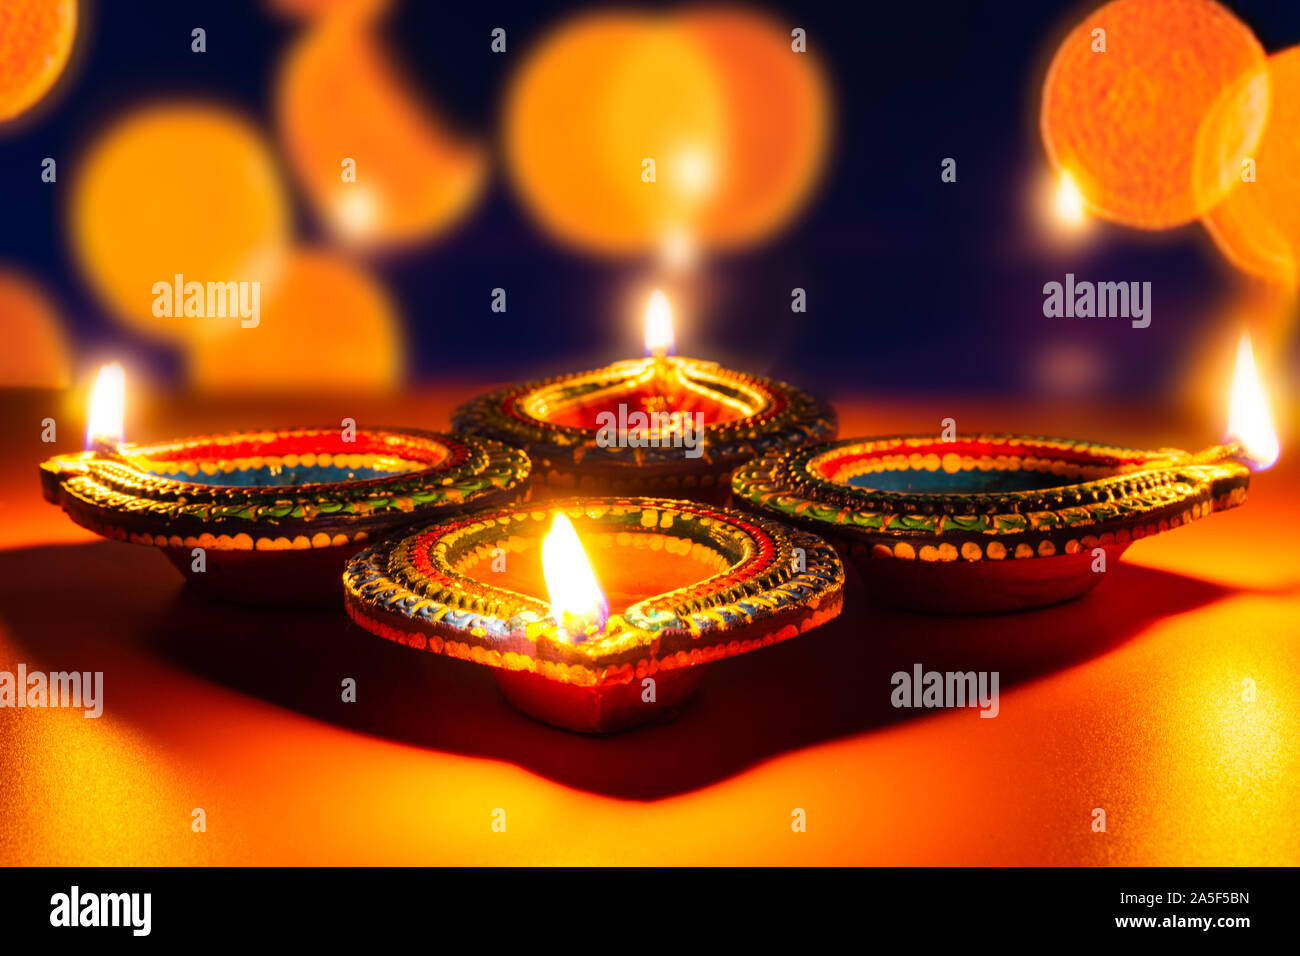 Indian festival Diwali, Diya oil lamps lit on colorful rangoli. Hindu traditional. Happy Deepavali. Copy space for text. Stock Photo